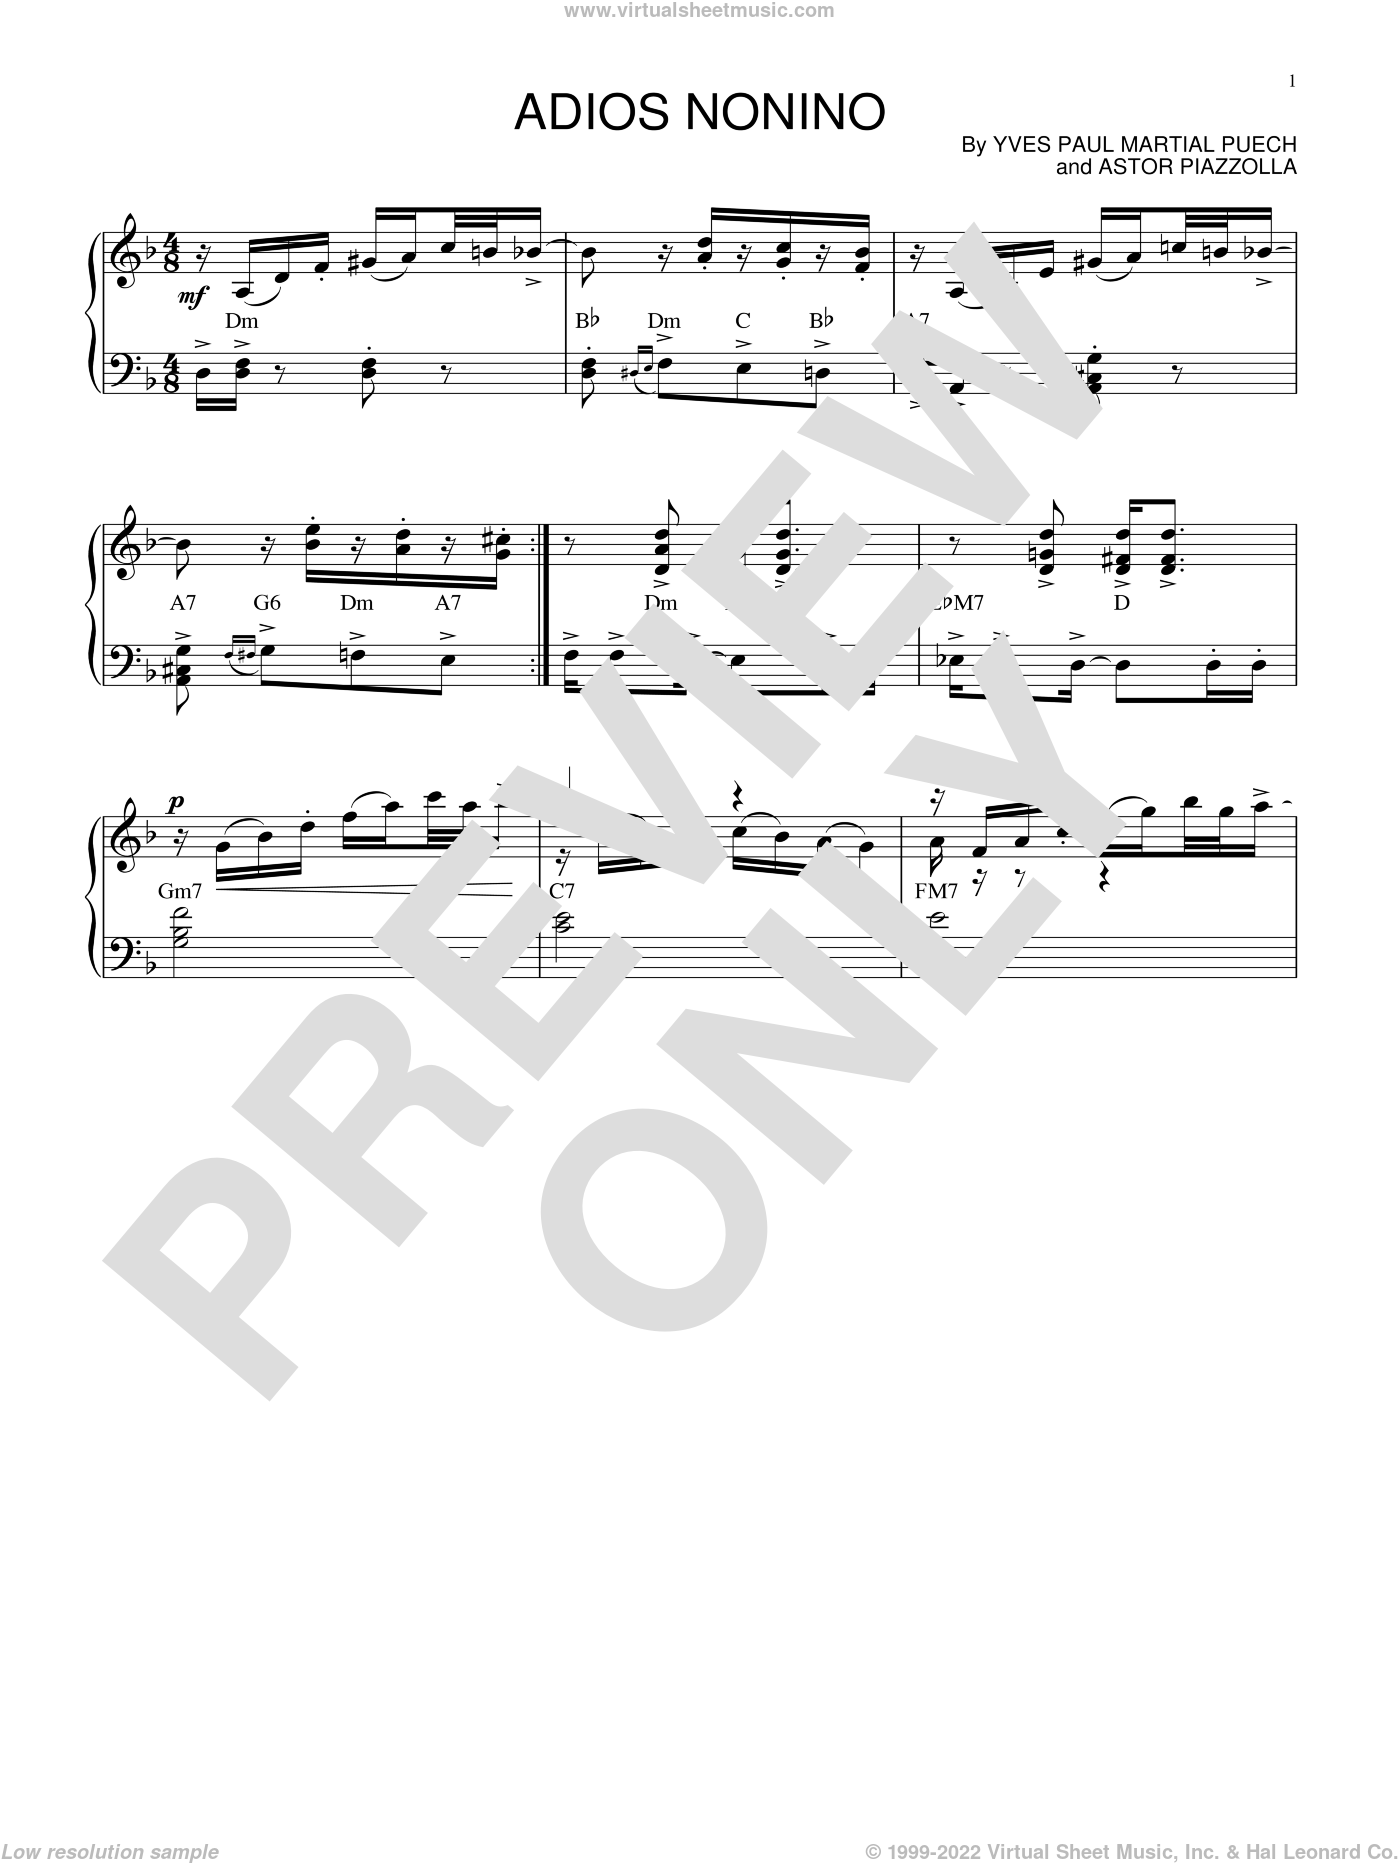 Adios nonino sheet music for piano solo by Astor Piazzolla and Yves Paul Martial Puech, intermediate skill level